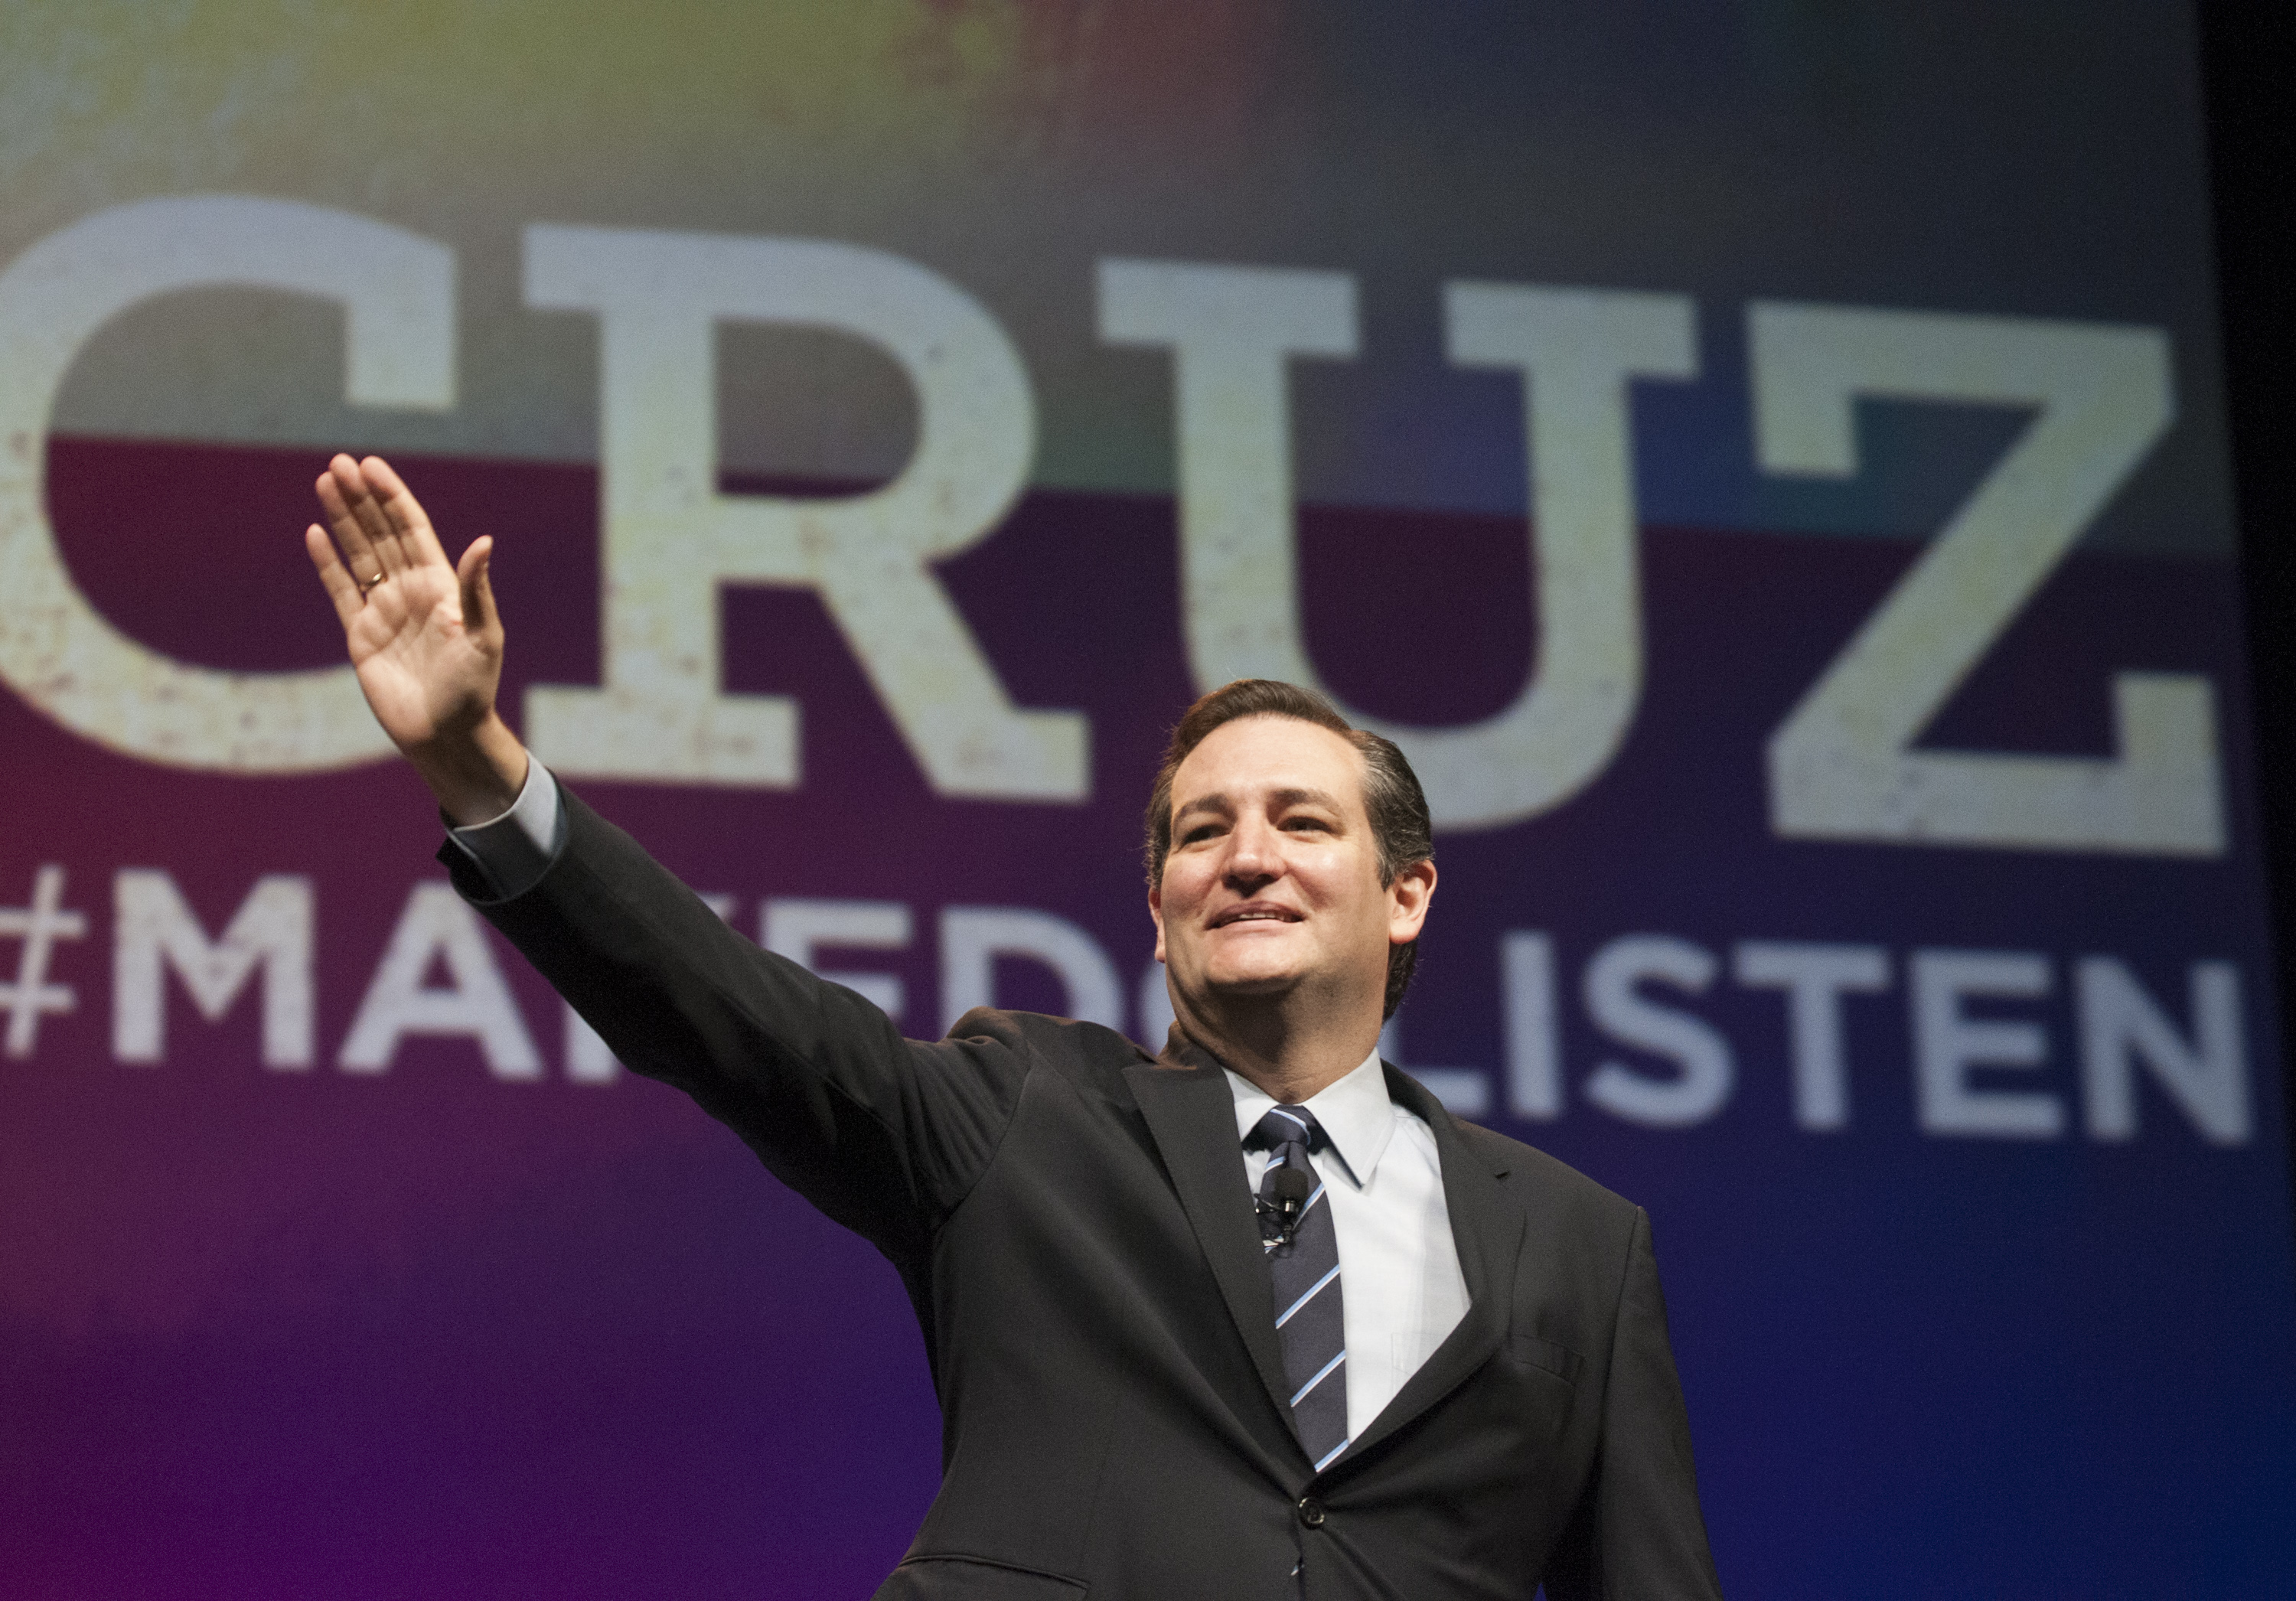 U.S. Sen. Ted Cruz promises delegates at the Texas GOP Convention in Fort Worth, Texas on June 6, 2014 to lead a conservative revolution unseen since the days of Ronald Reagan.